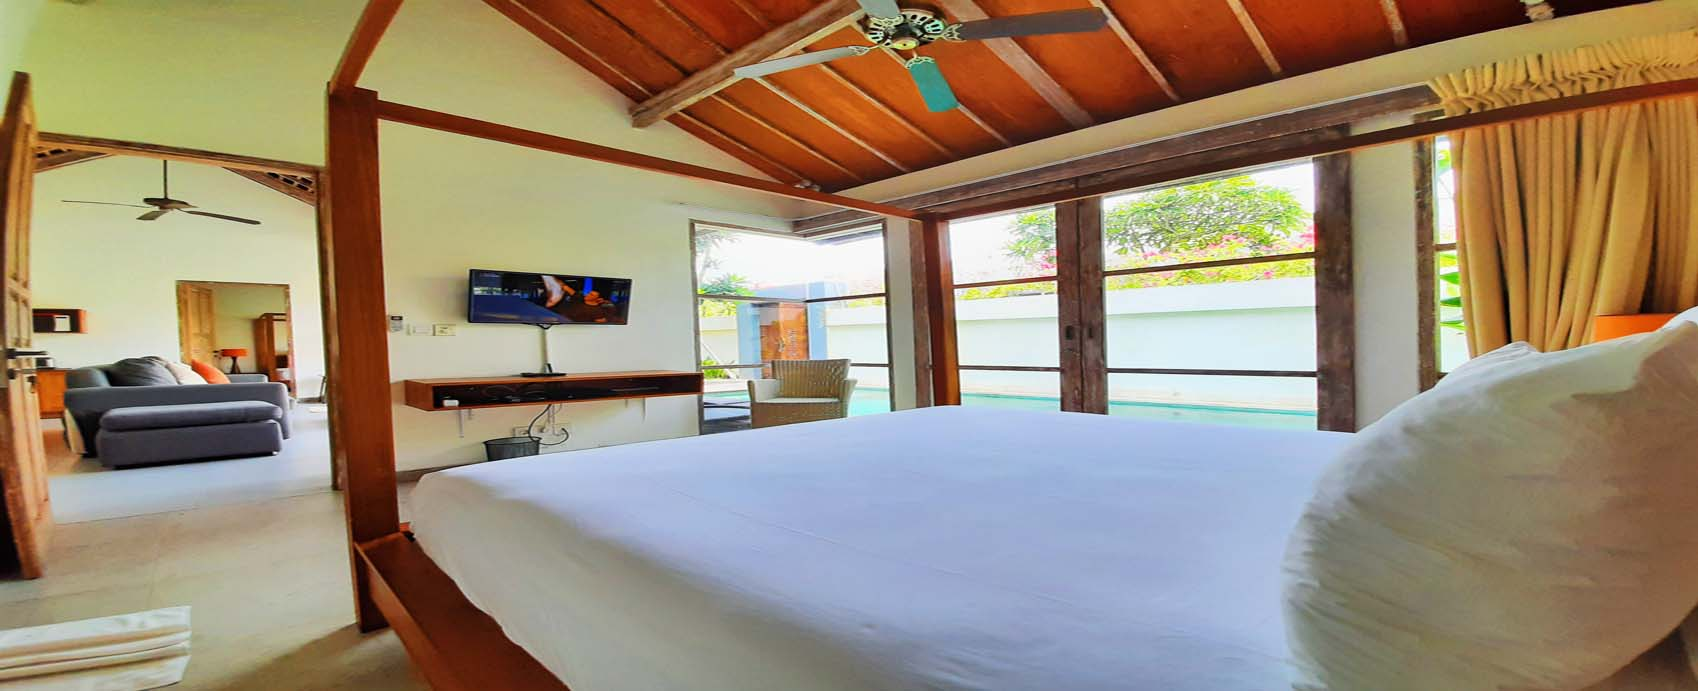 Bedroom of The Decks Bali Villa for rent